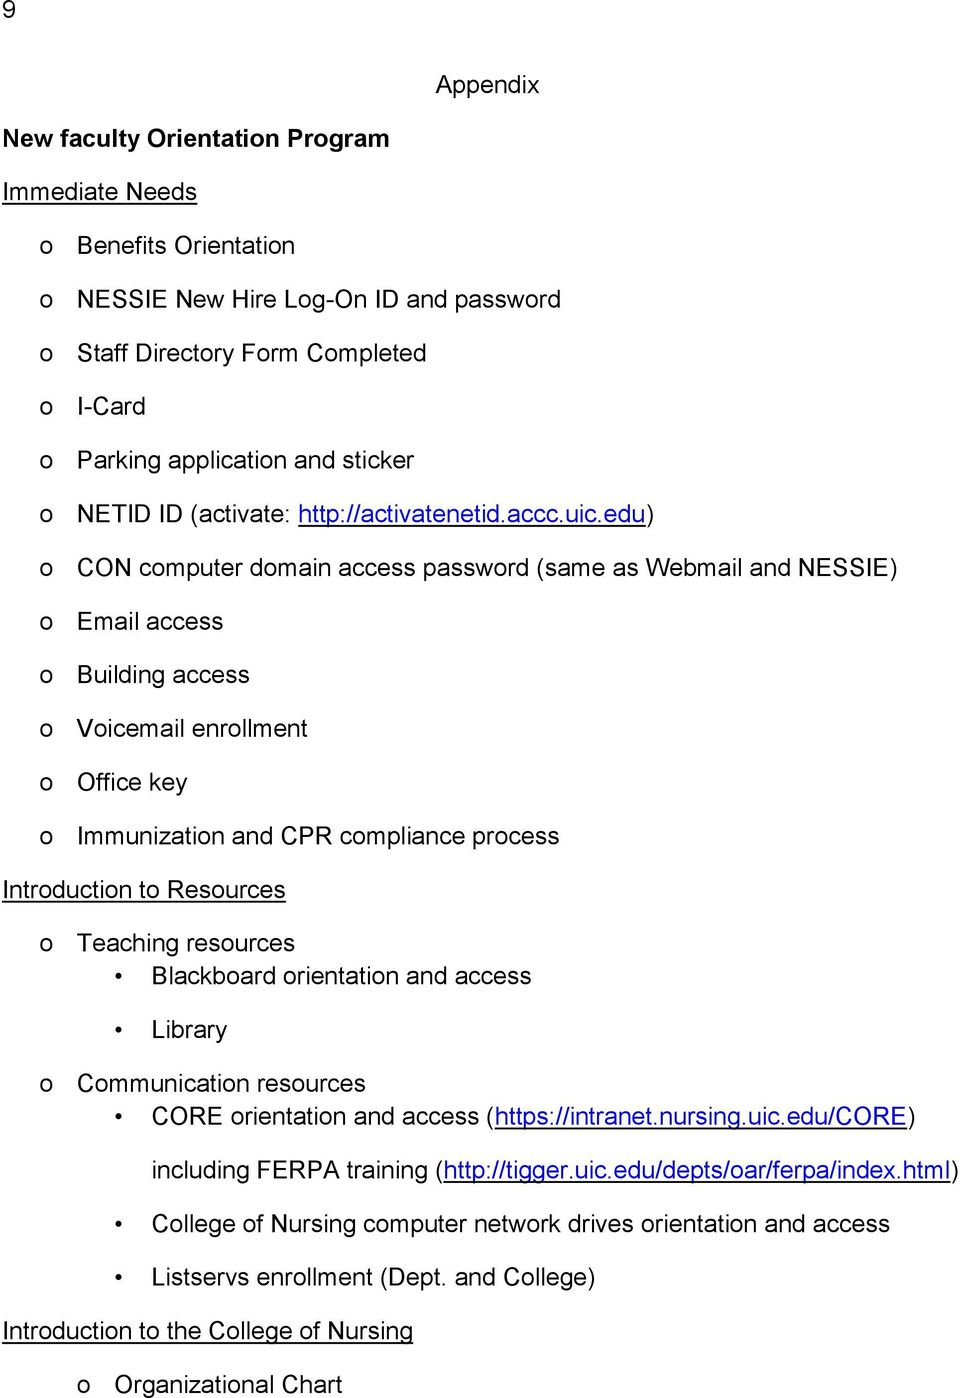 edu) o CON computer domain access password (same as Webmail and NESSIE) o Email access o Building access o Voicemail enrollment o Office key o Immunization and CPR compliance process Introduction to